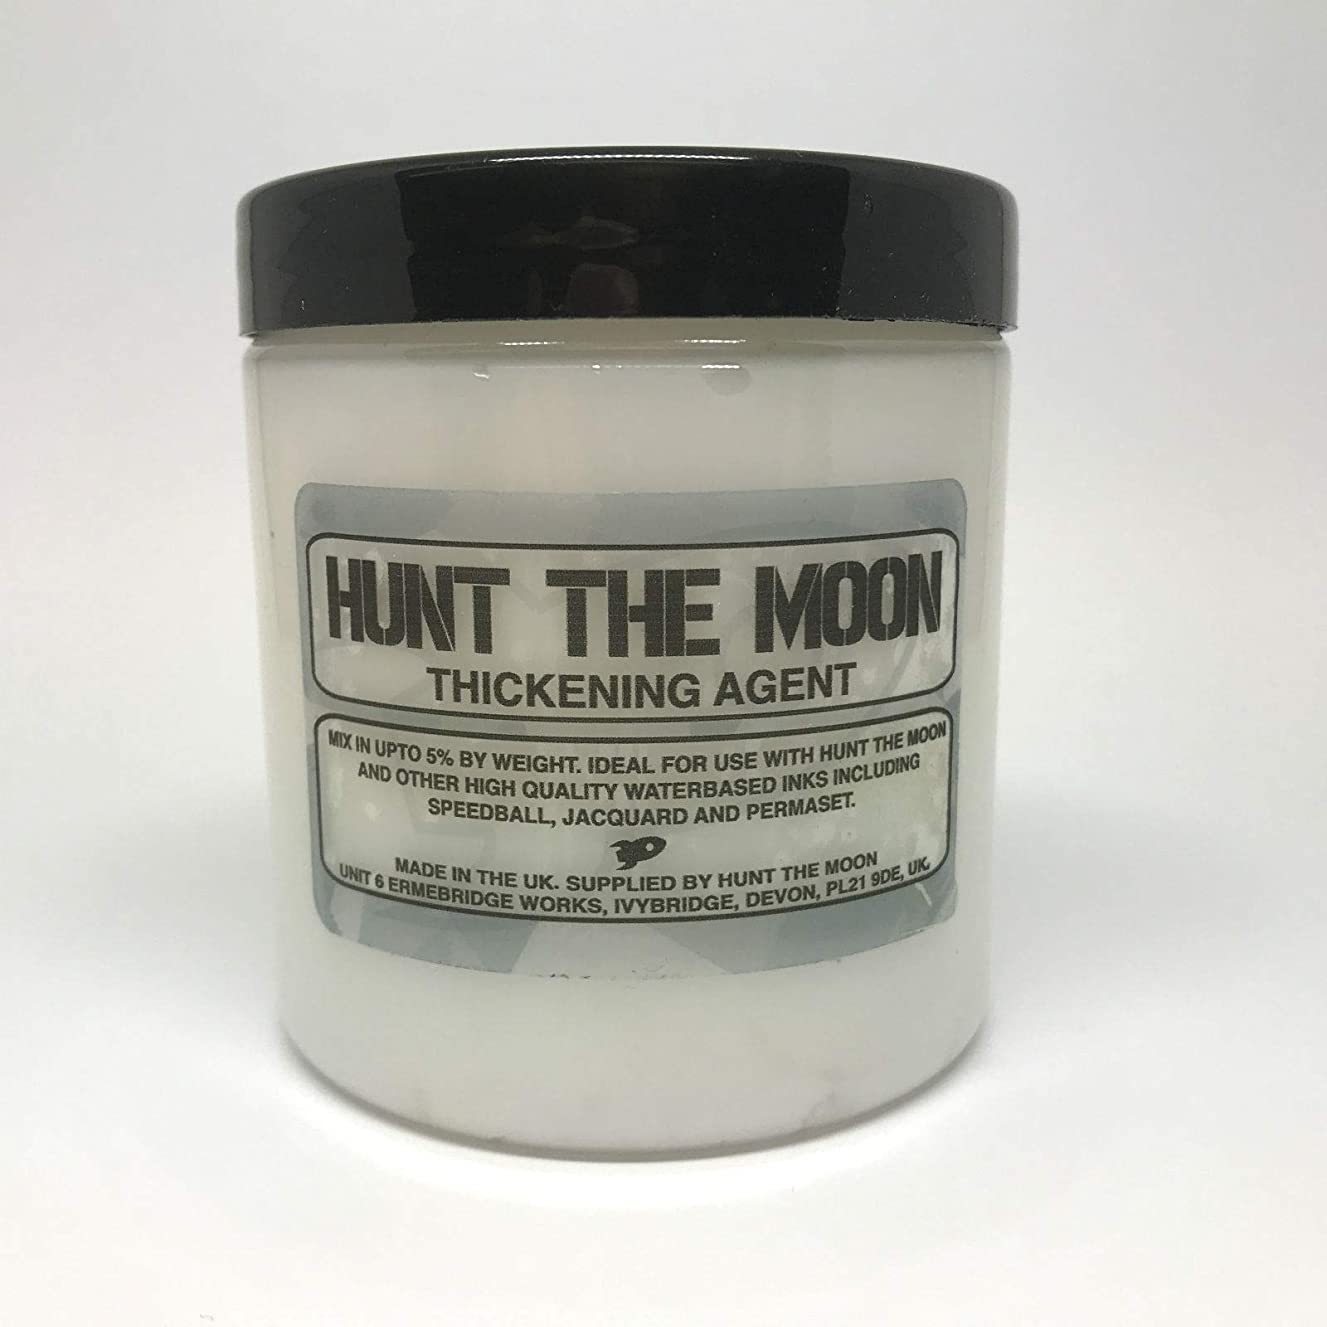 Hunt The Moon Water Based Screen Printing Ink Thickening Agent, Additive, 240ml